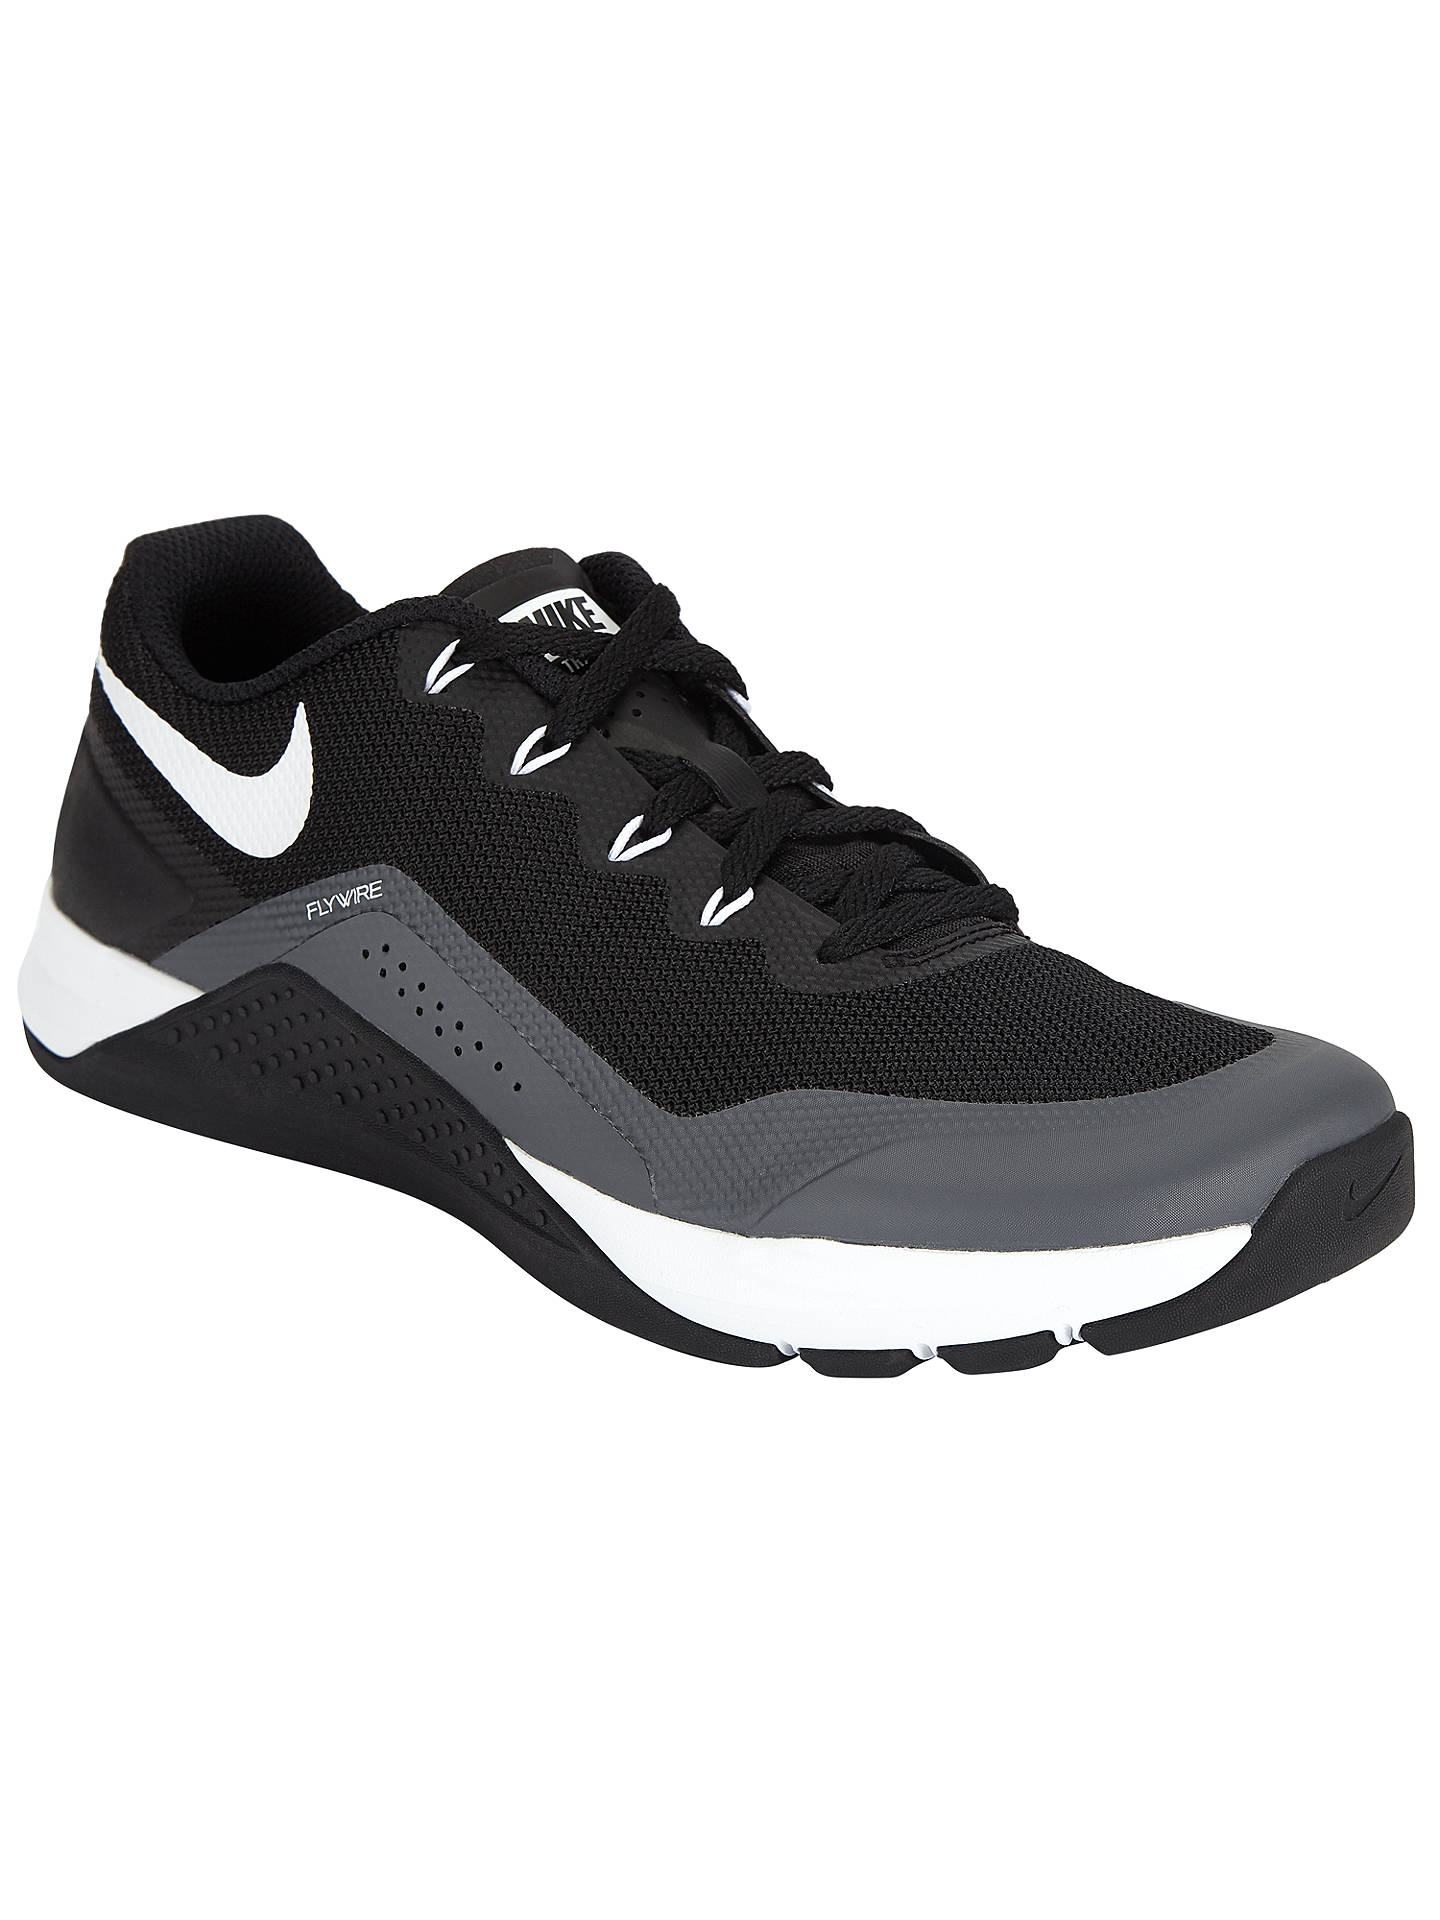 06698dc43bc29b Buy Nike Metcon Repper DSX Women's Cross Trainers, Black/White/Grey, 4 ...